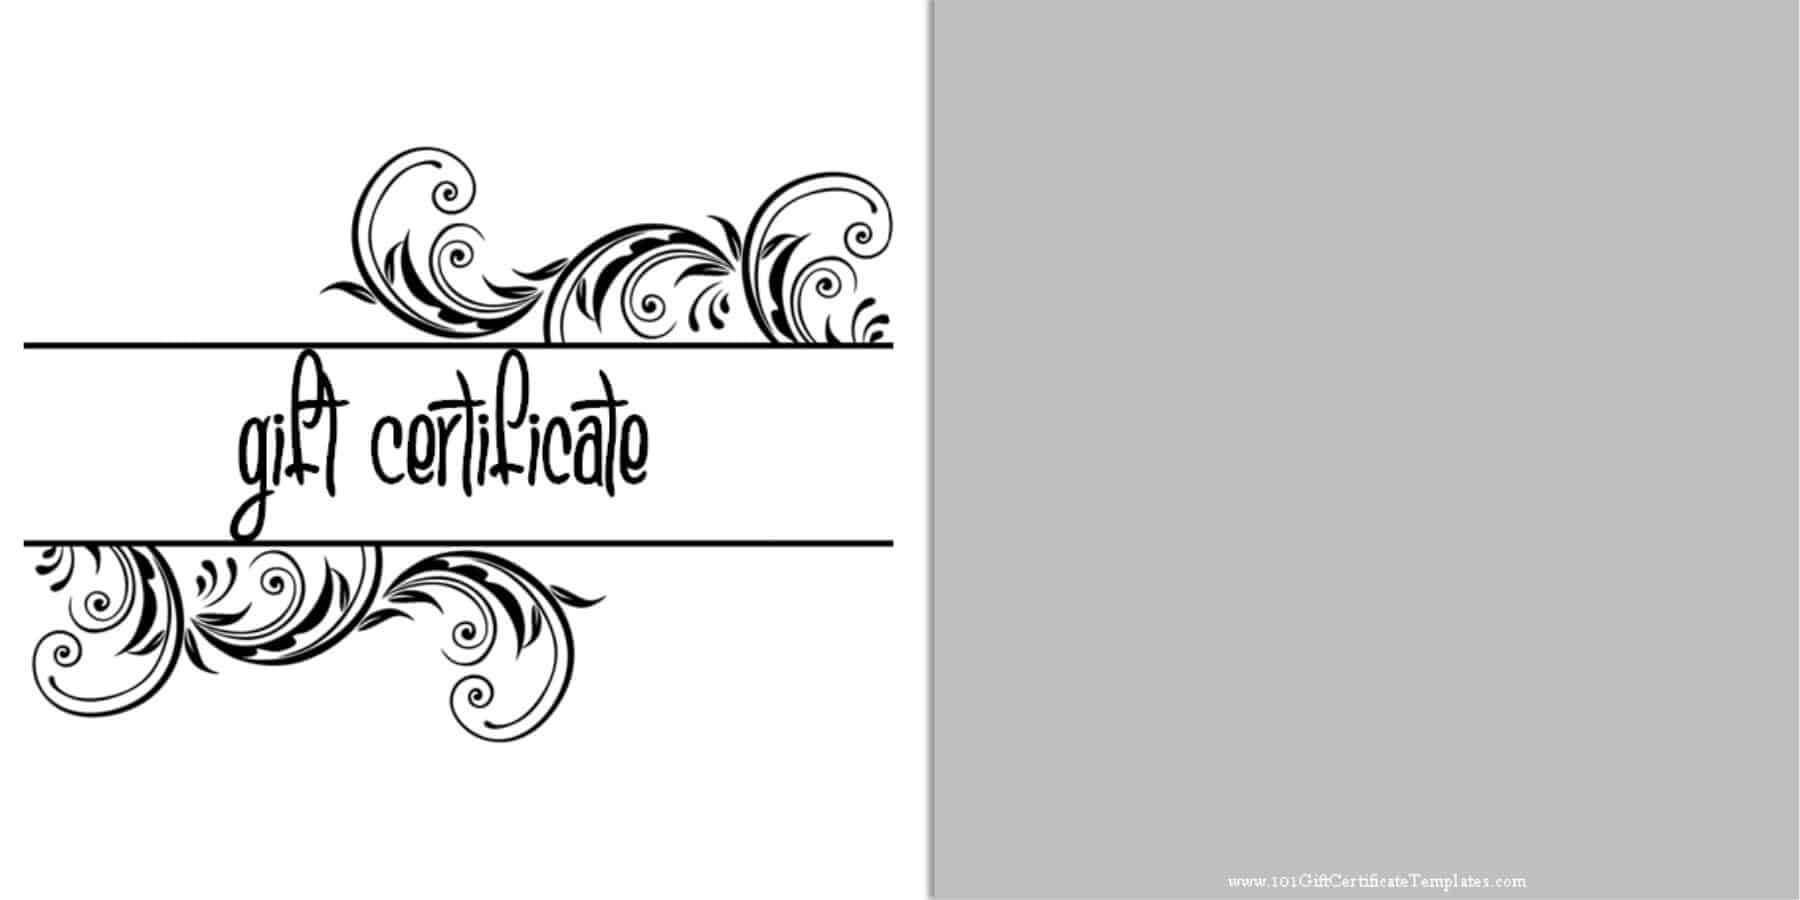 Printable Gift Certificate Templates Inside Black And White Gift Certificate Template Free